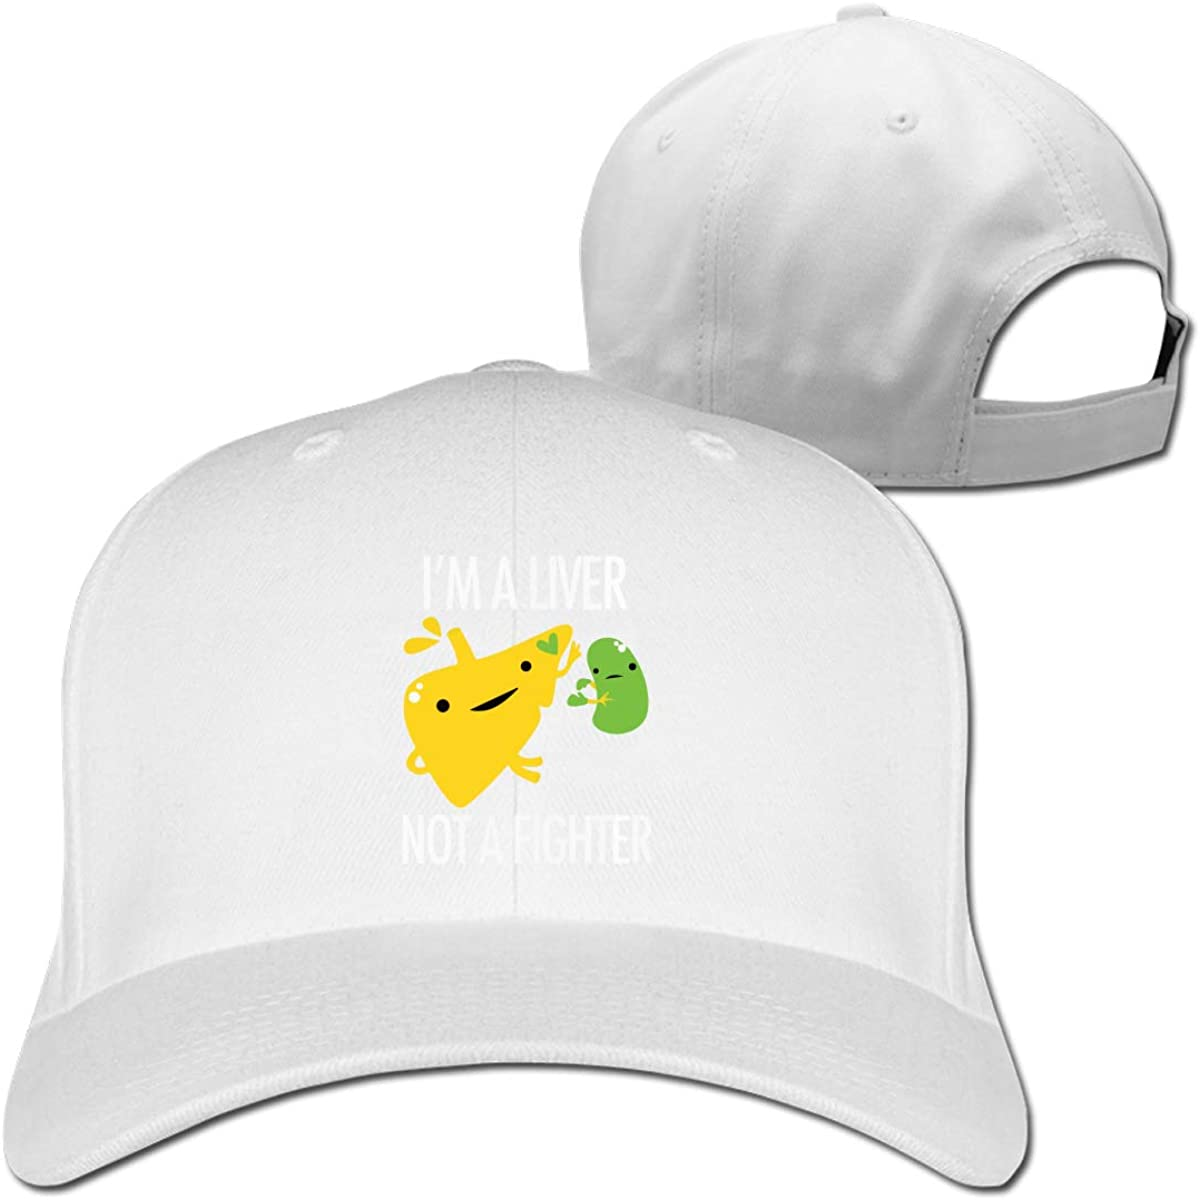 I/â/€/™M A Liver NOT A Fighter Unisex Pure Color Baseball Cap Classic Adjustable Ball Hat